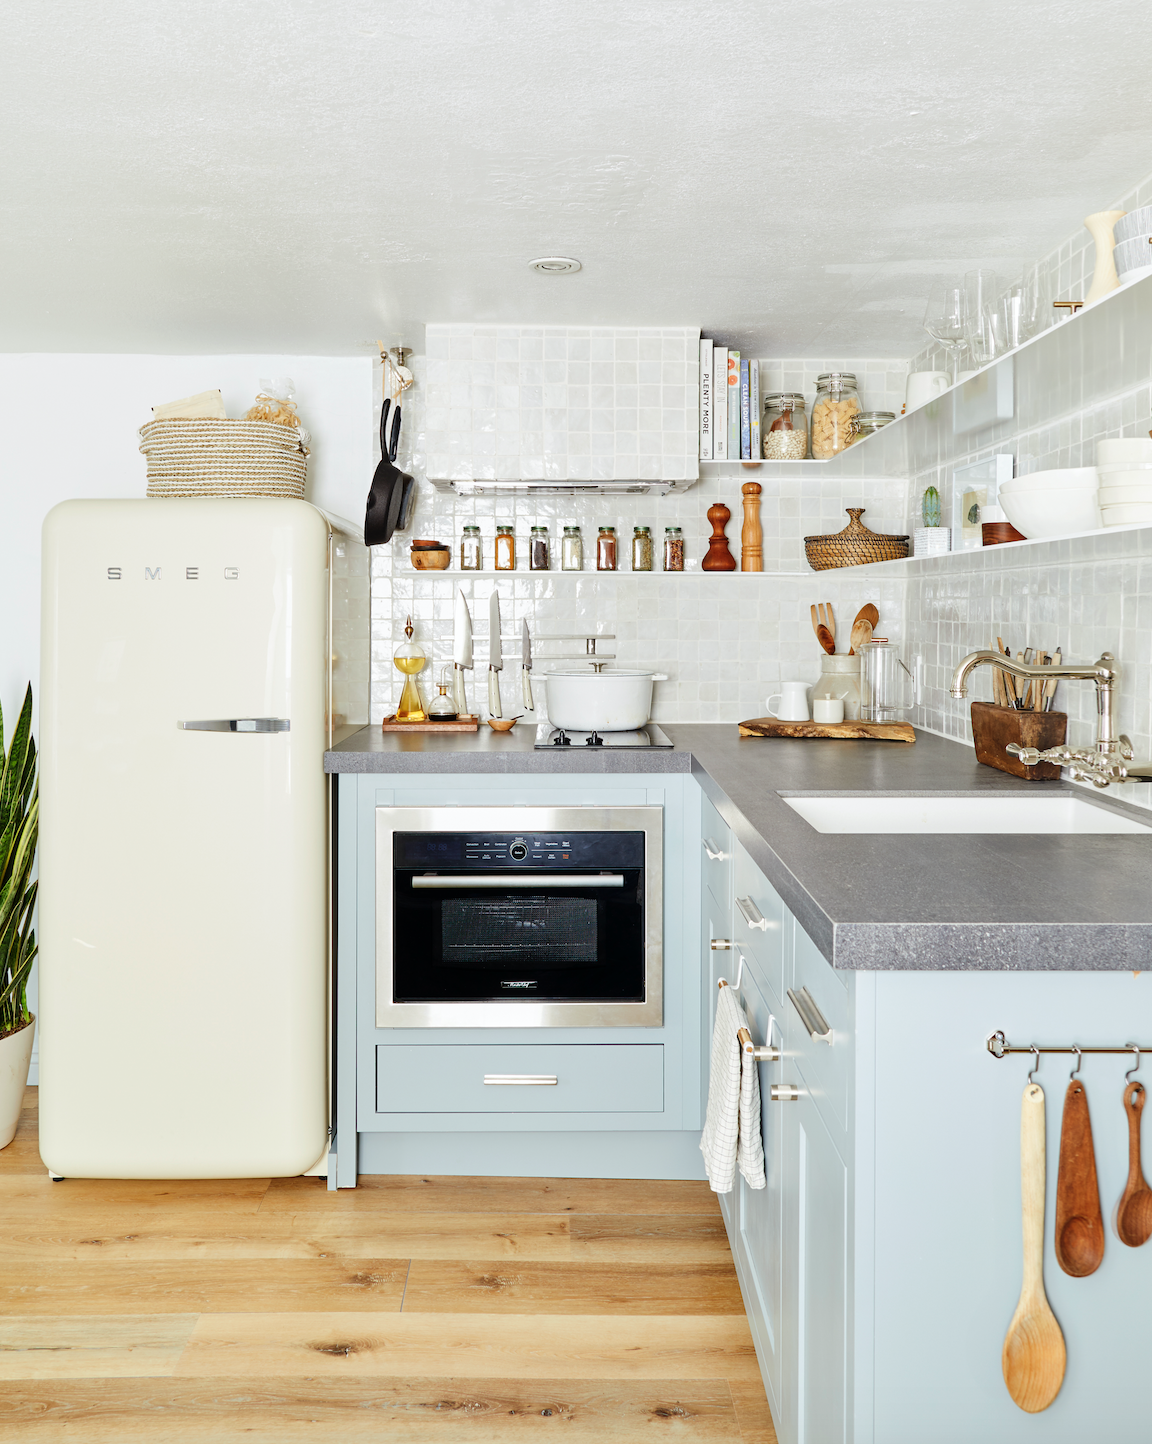 Small Kitchen Design Ideas and Layout Tips   Hunker   Small ...